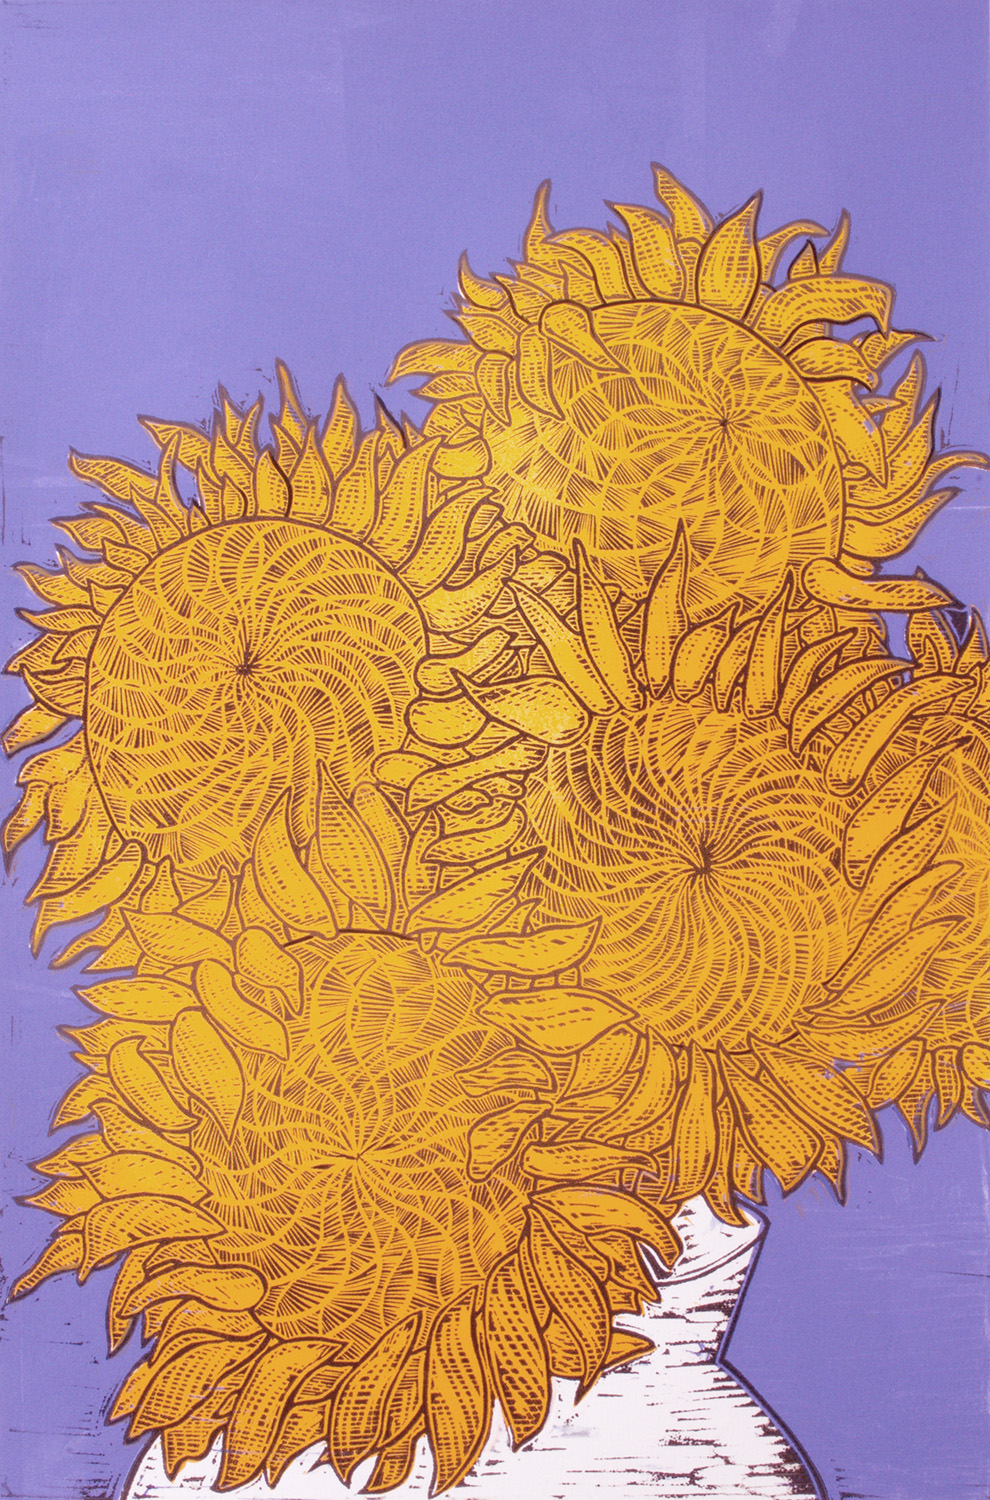 Original linocut print with sunflowers by Faisal Khouja